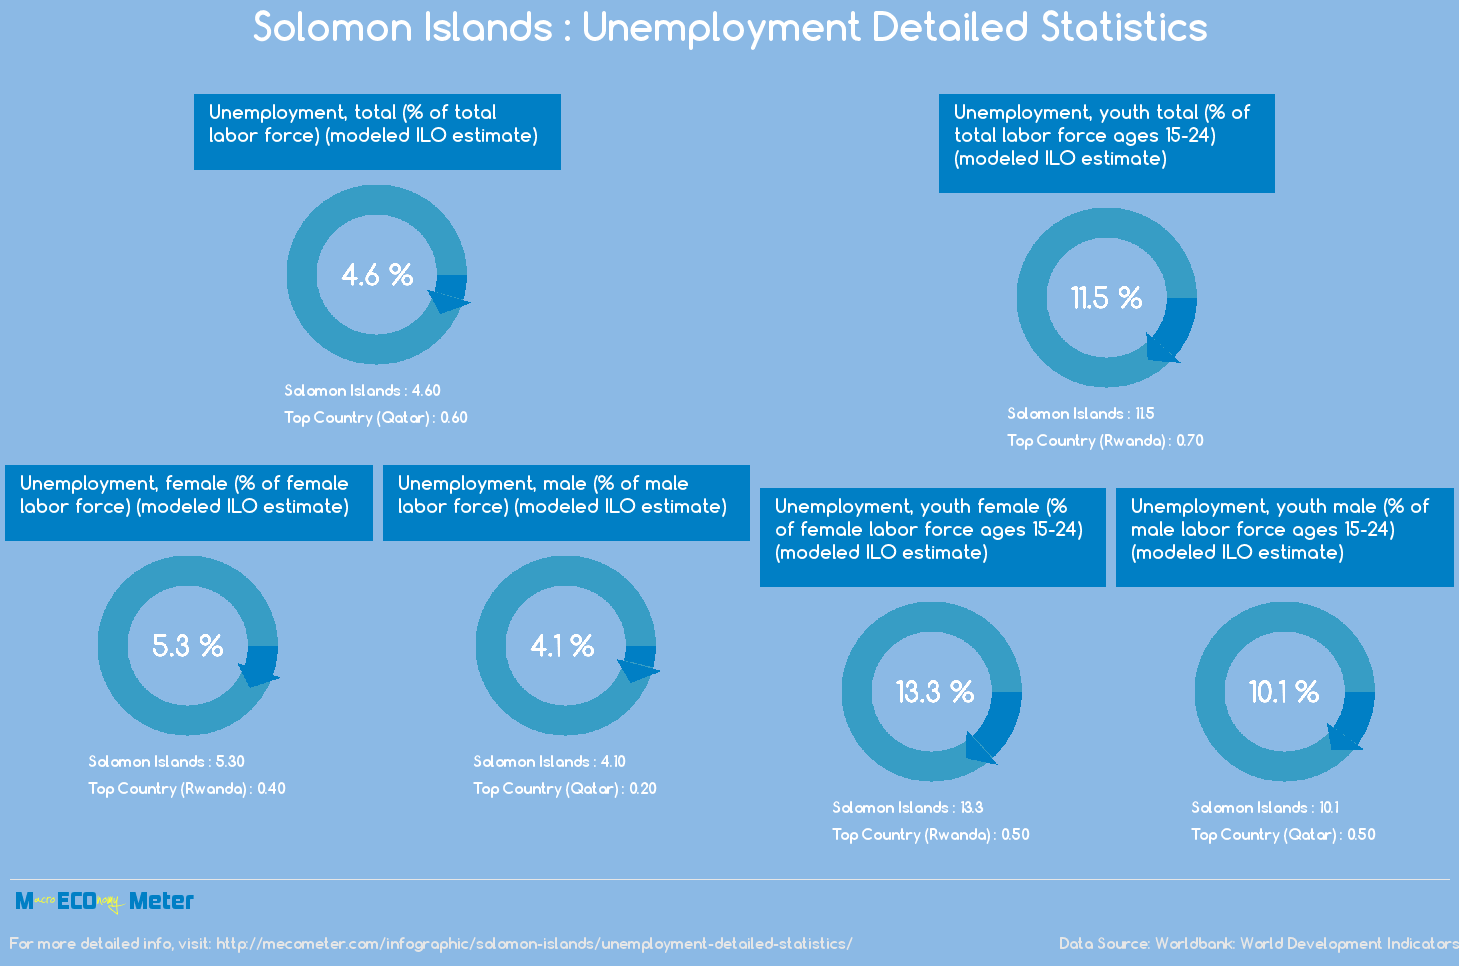 Solomon Islands : Unemployment Detailed Statistics